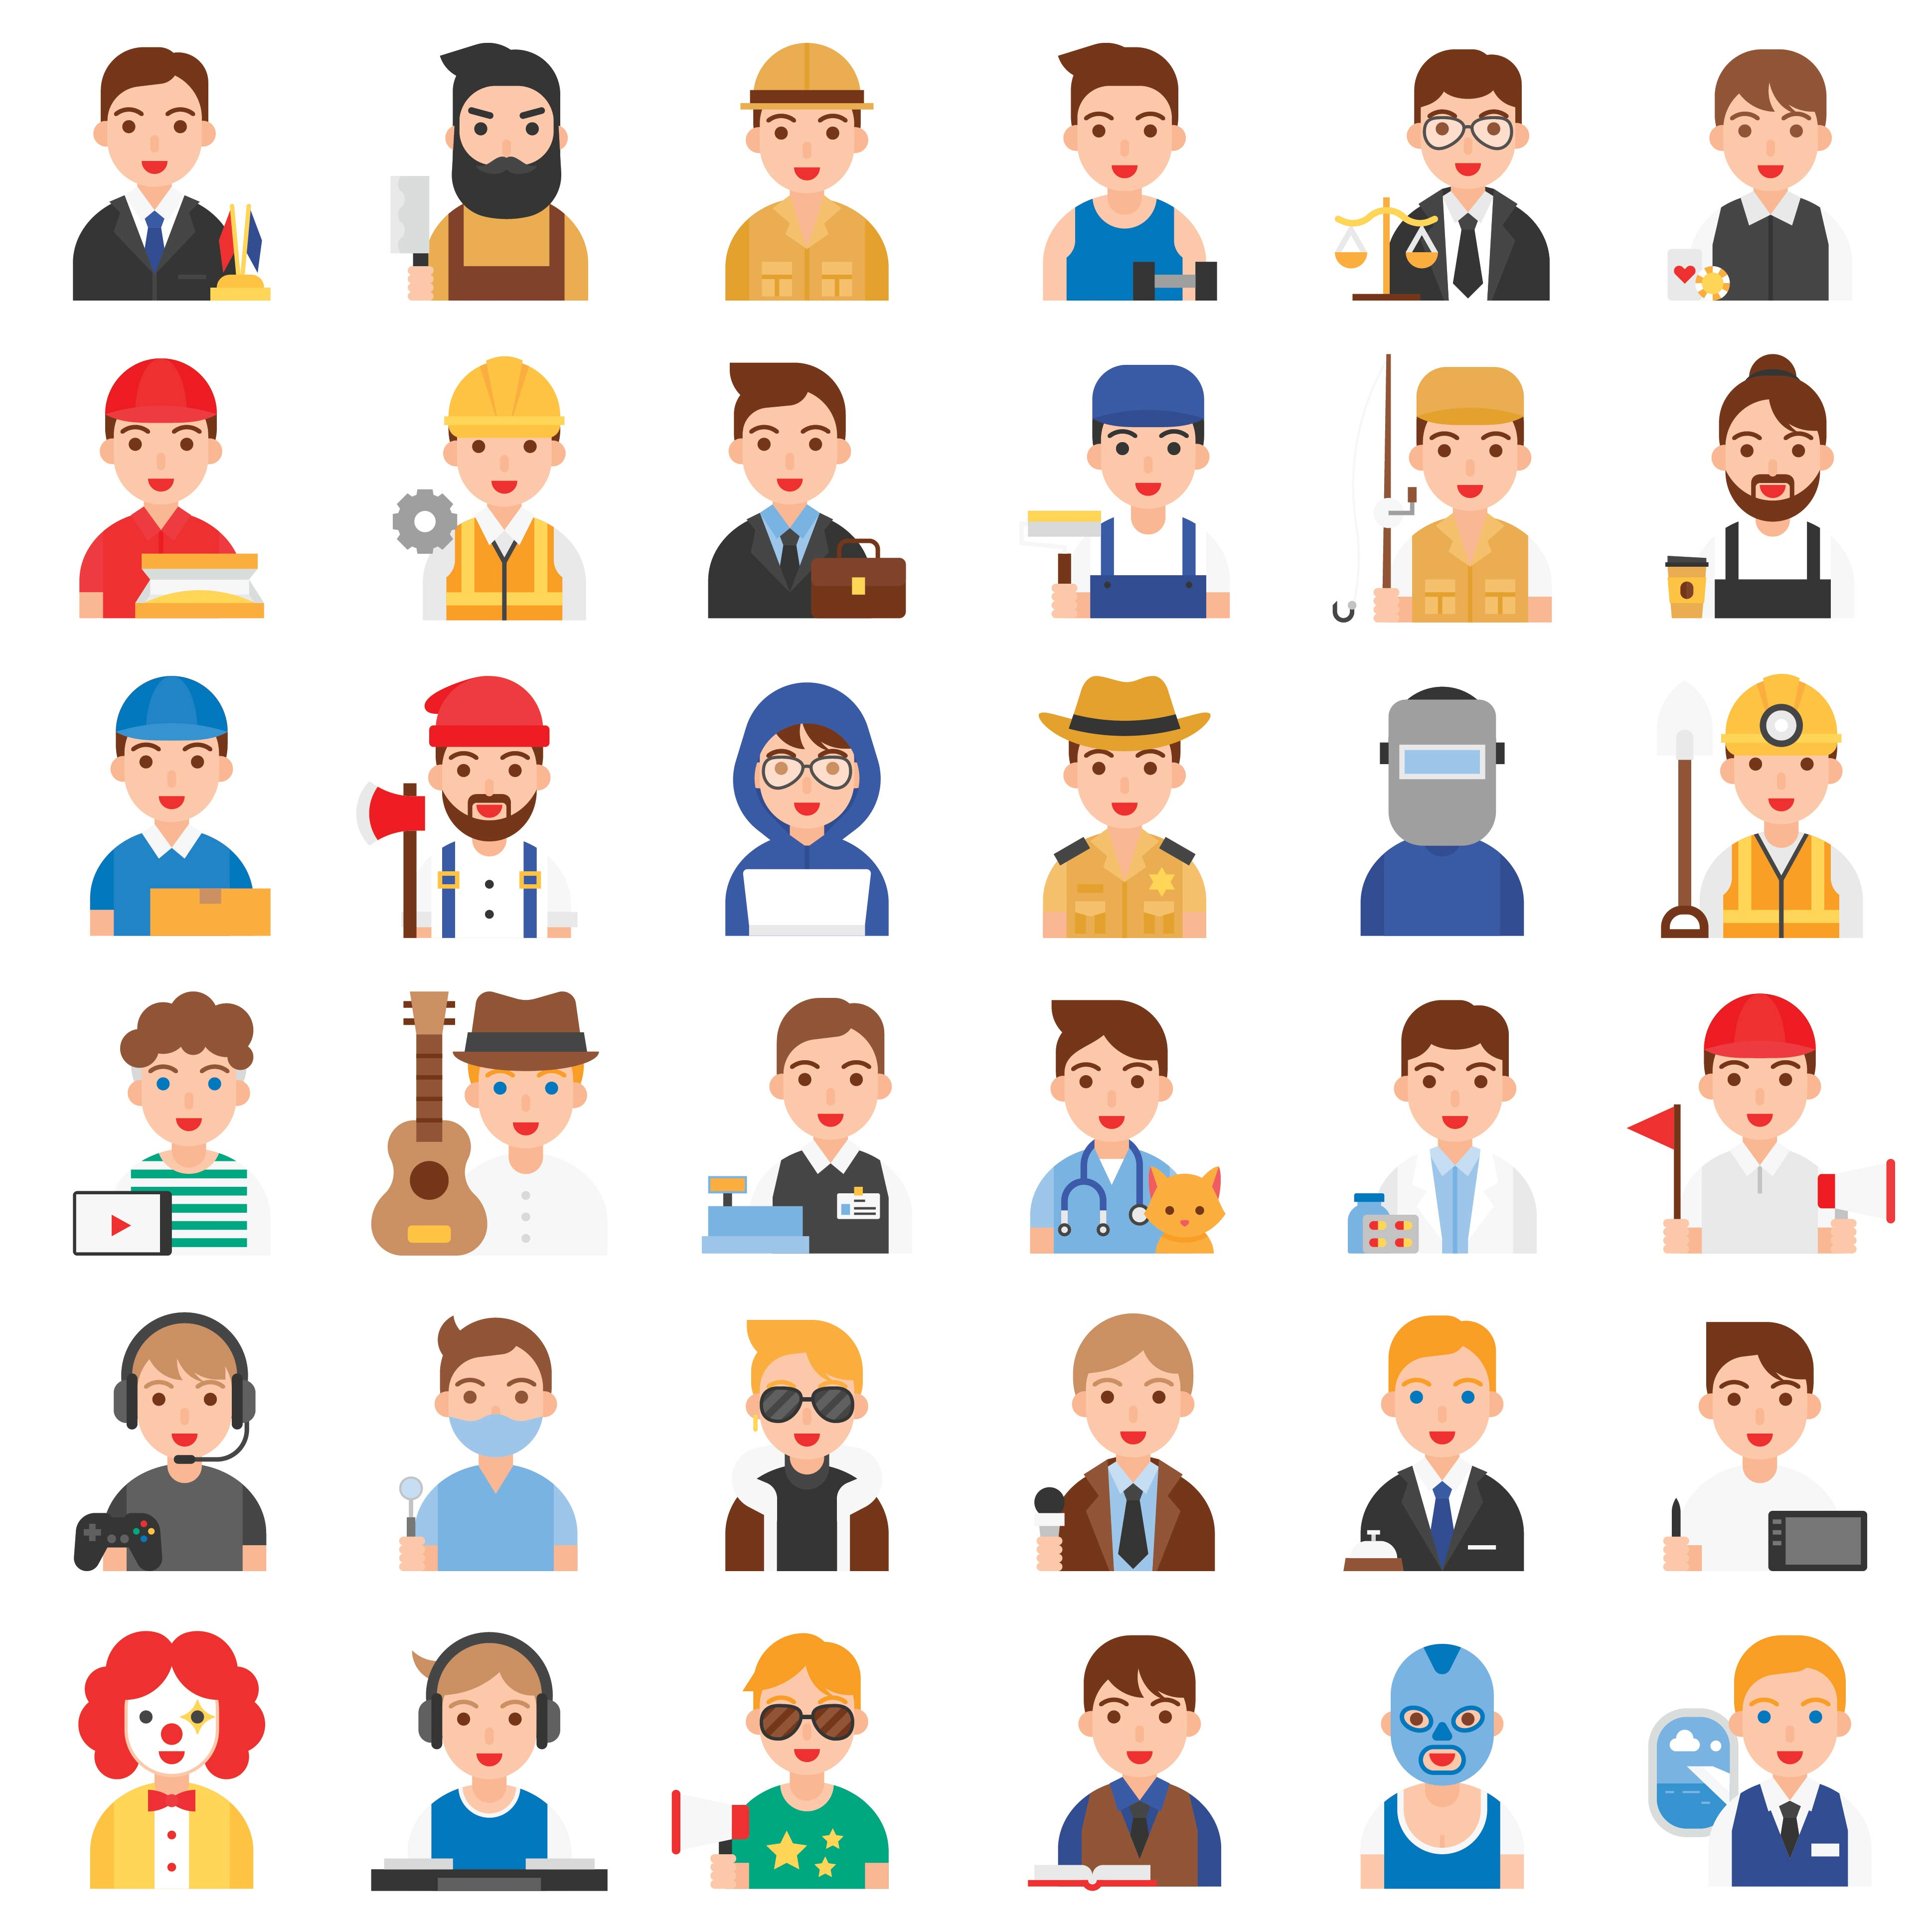 Profession and job related icon set